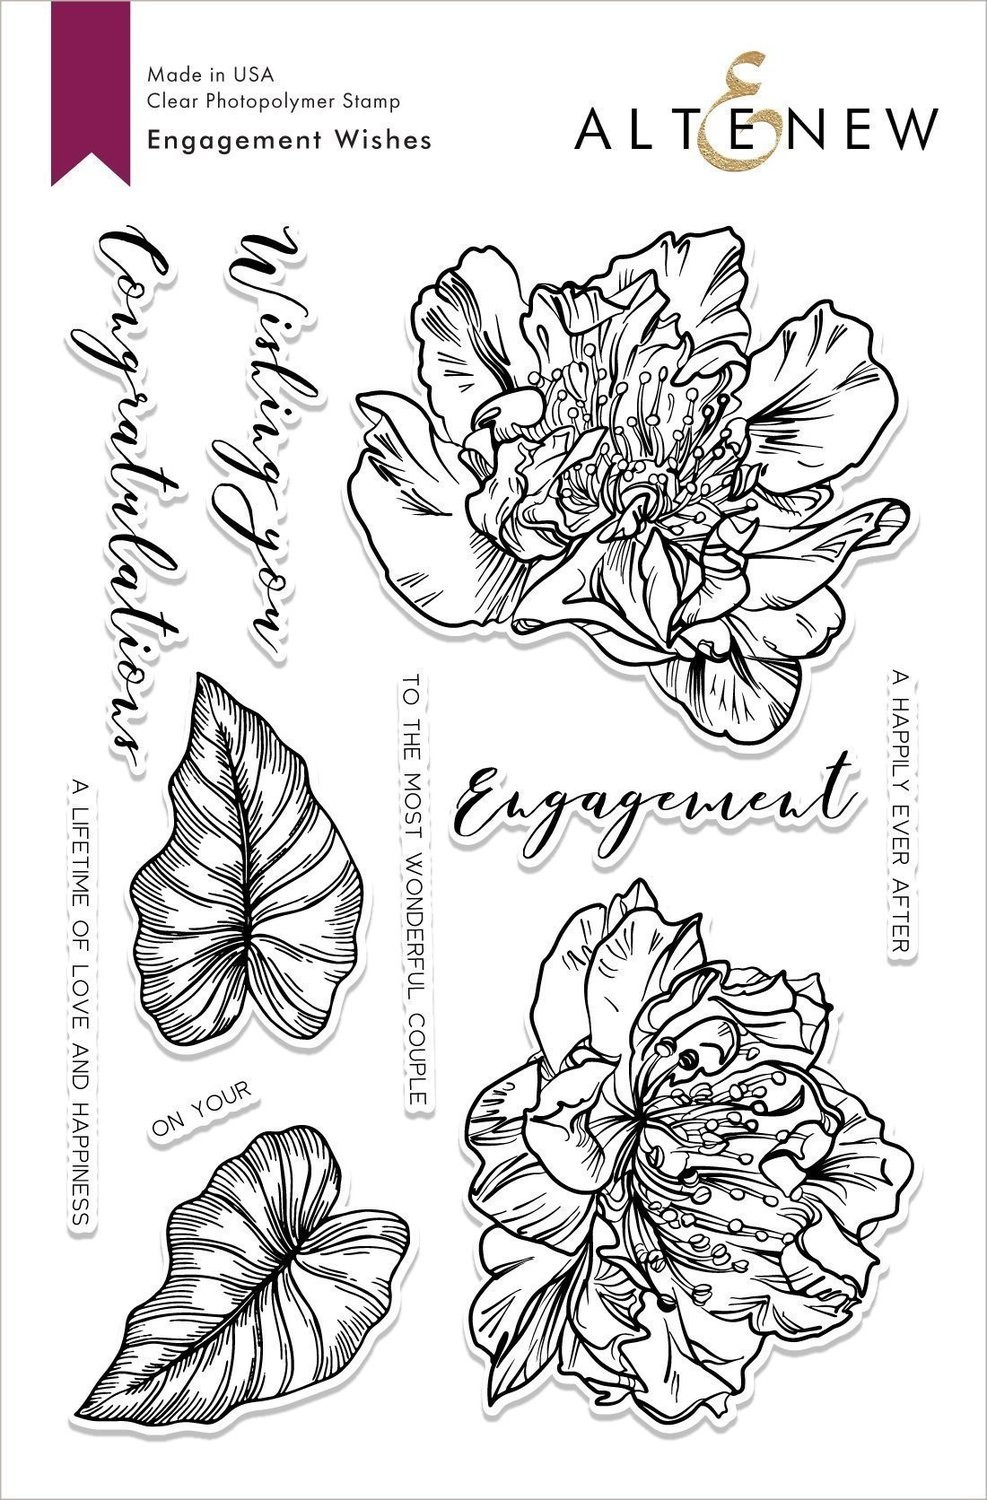 Altenew ENGAGEMENT WISHES Clear Stamp Set